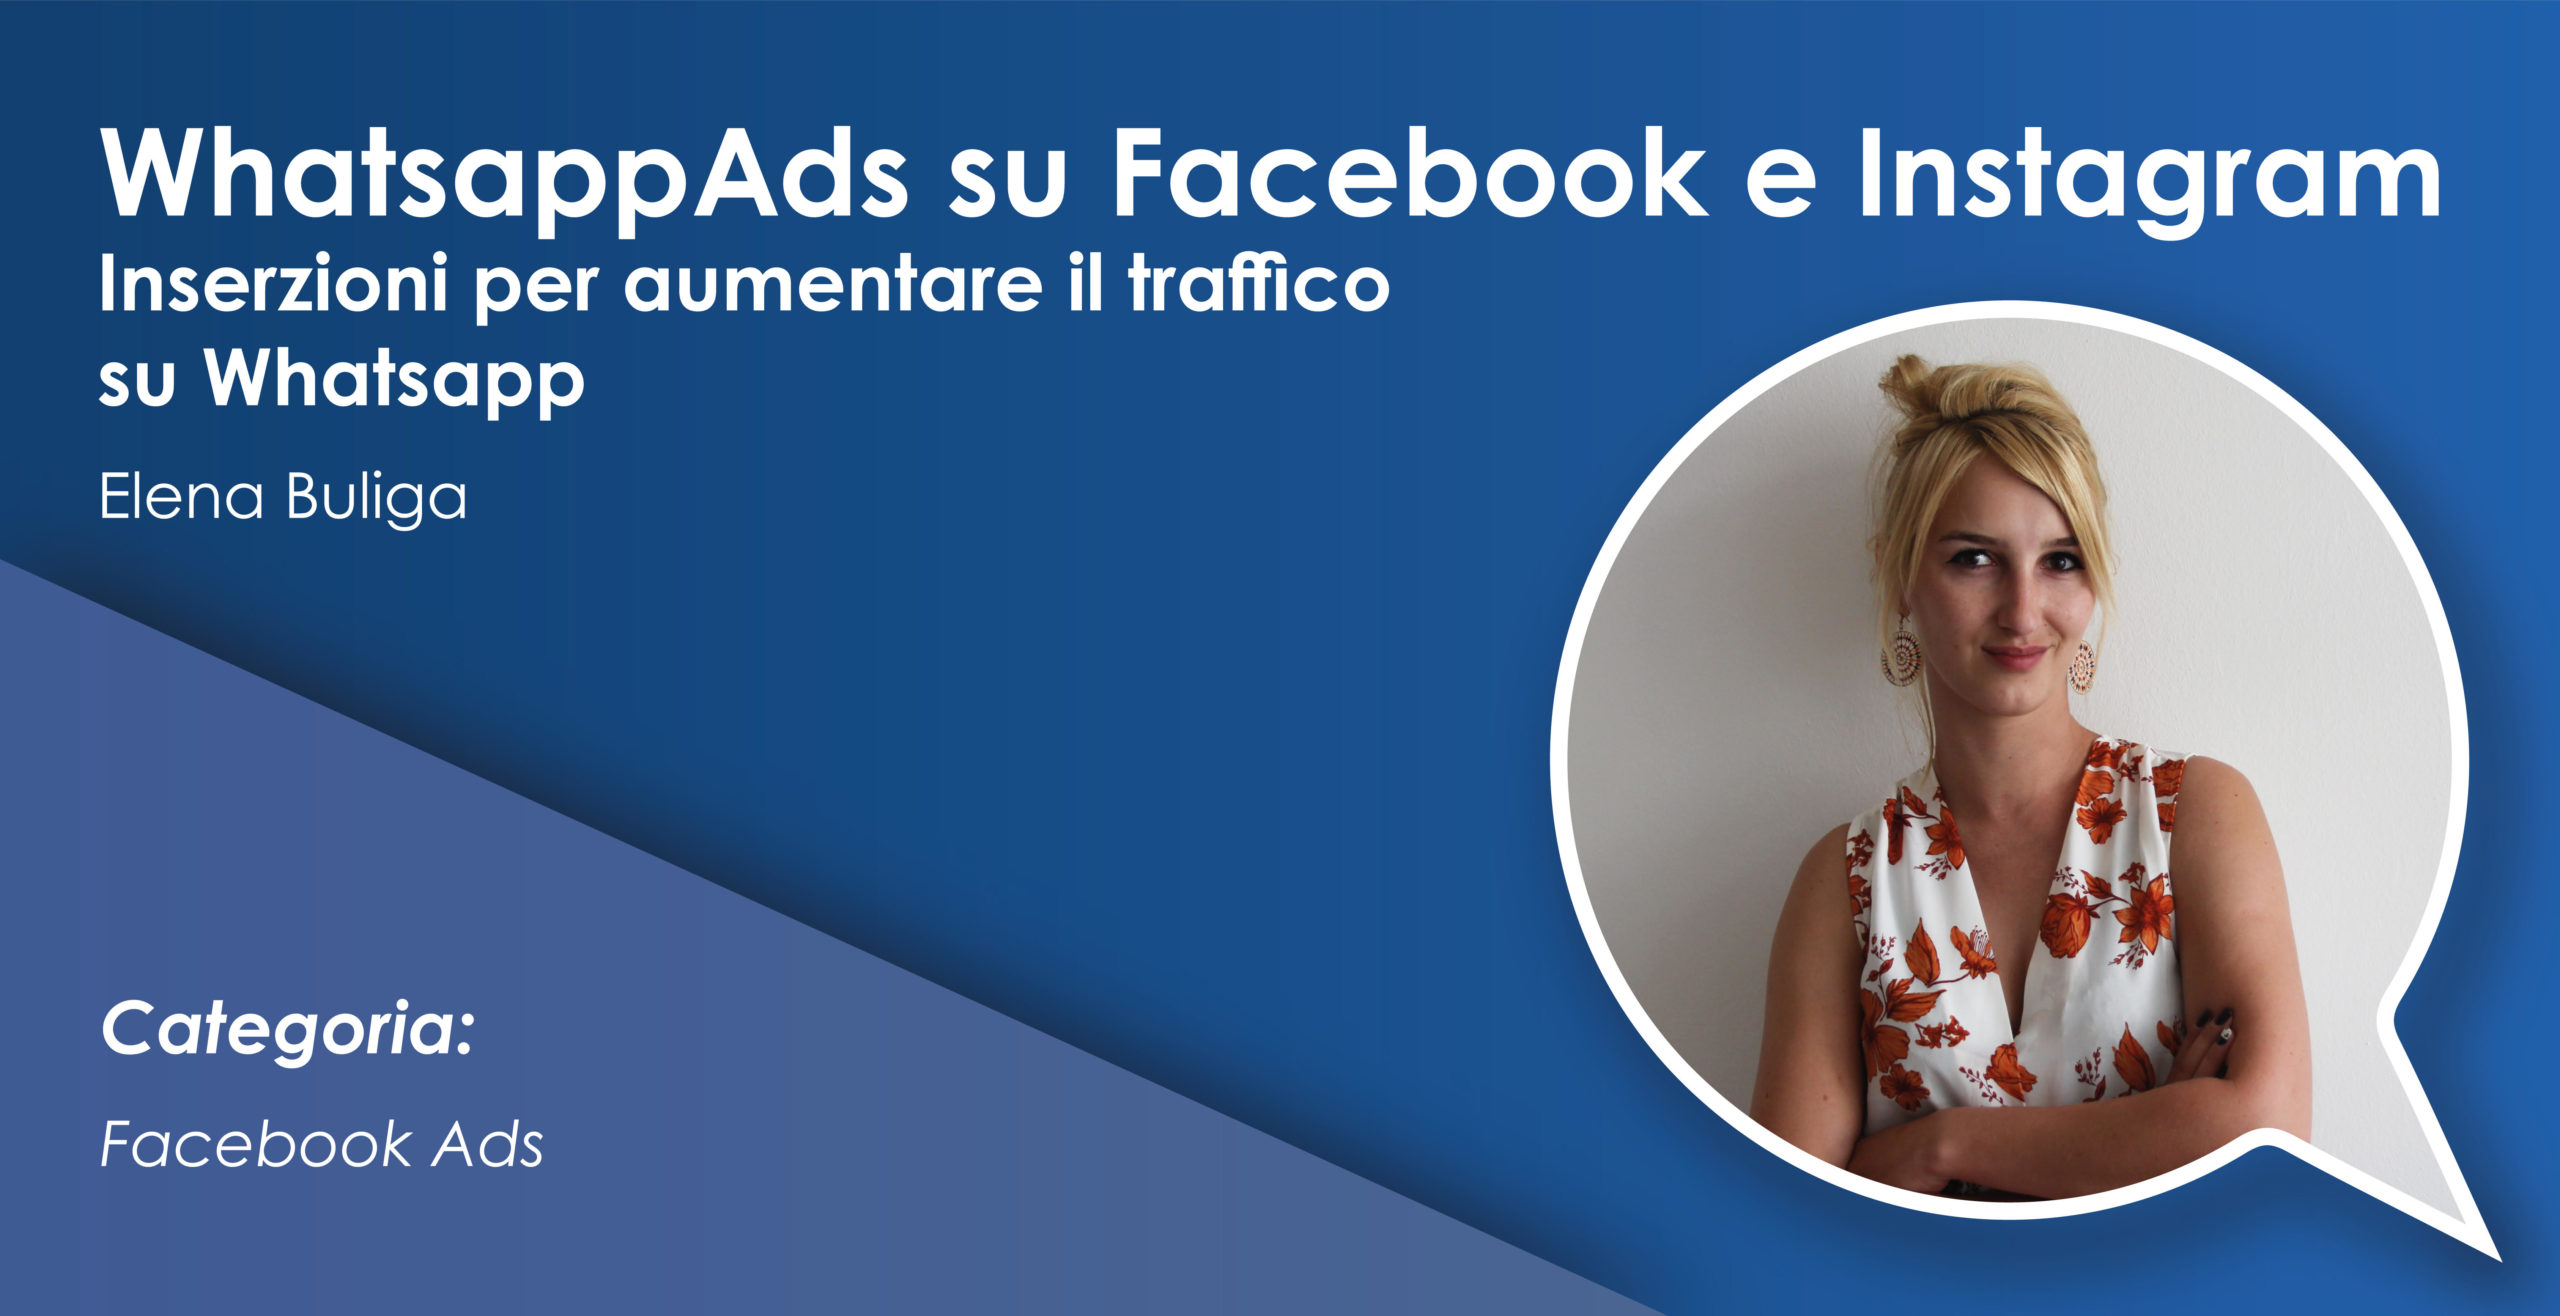 WhatsappAds su Facebook e Instagram